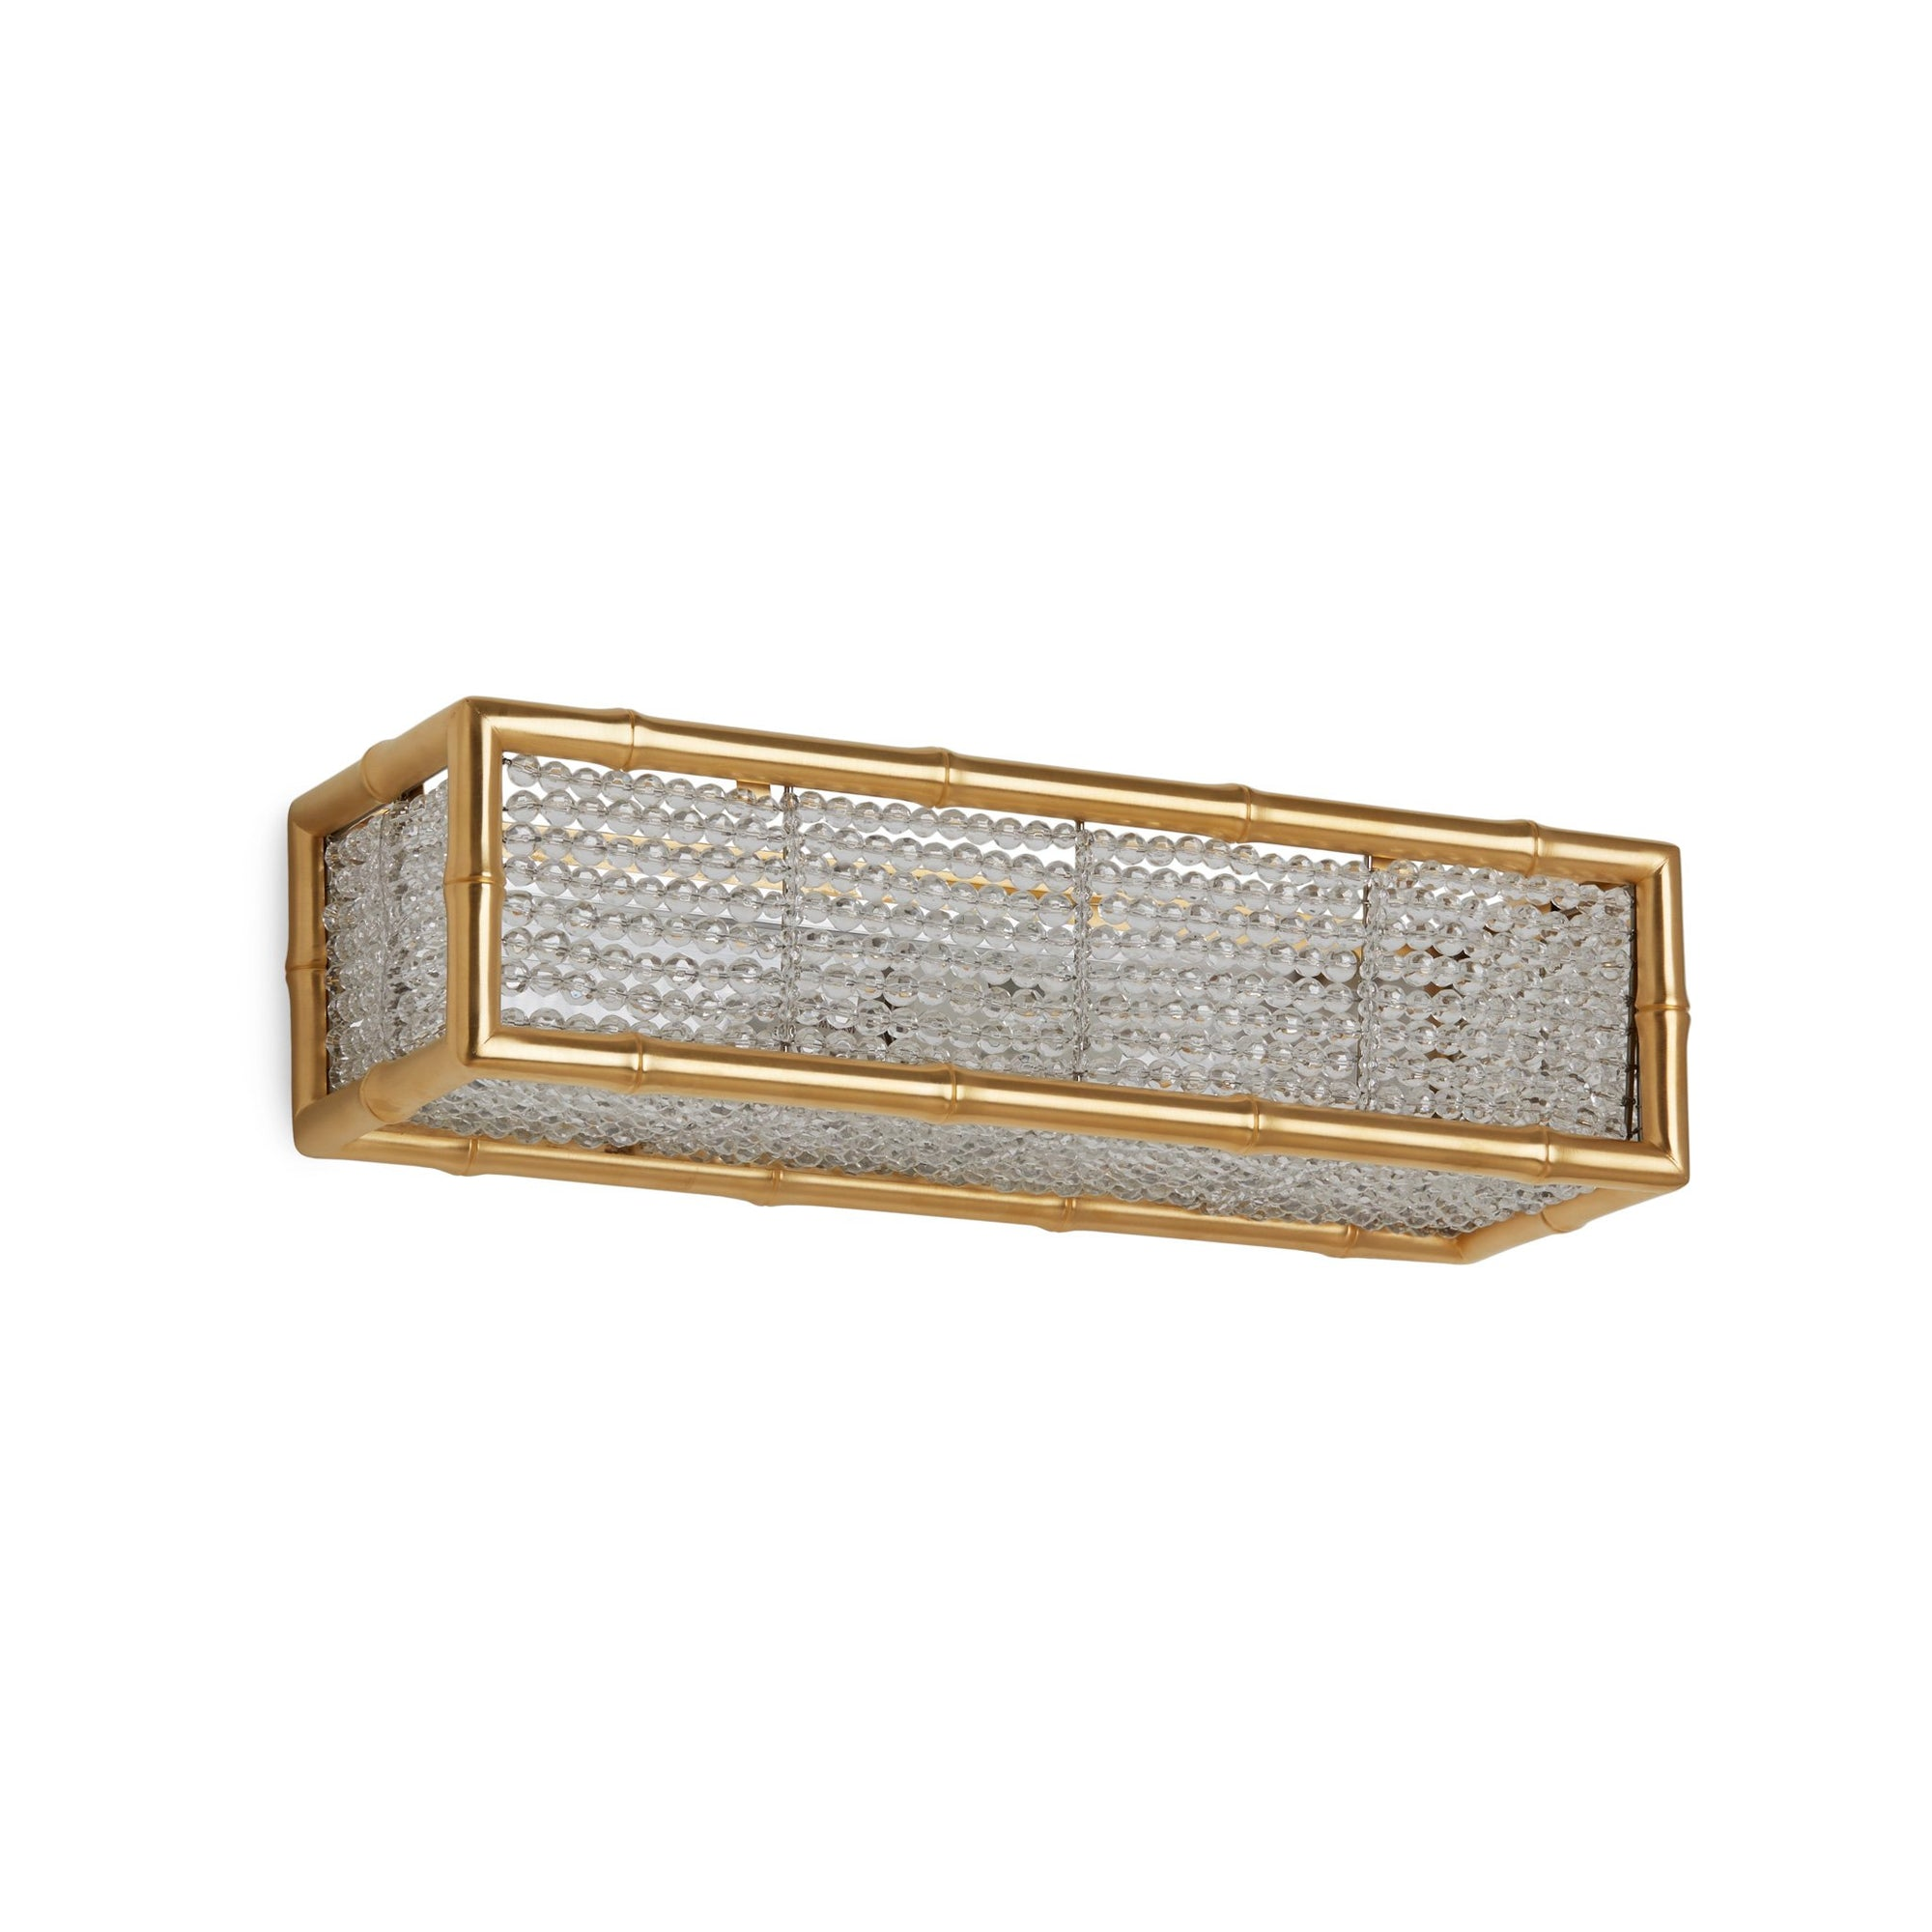 7151CB-16-GP Sherle Wagner International Bamboo Crystal Beaded Panel Light in Gold Plate metal finish